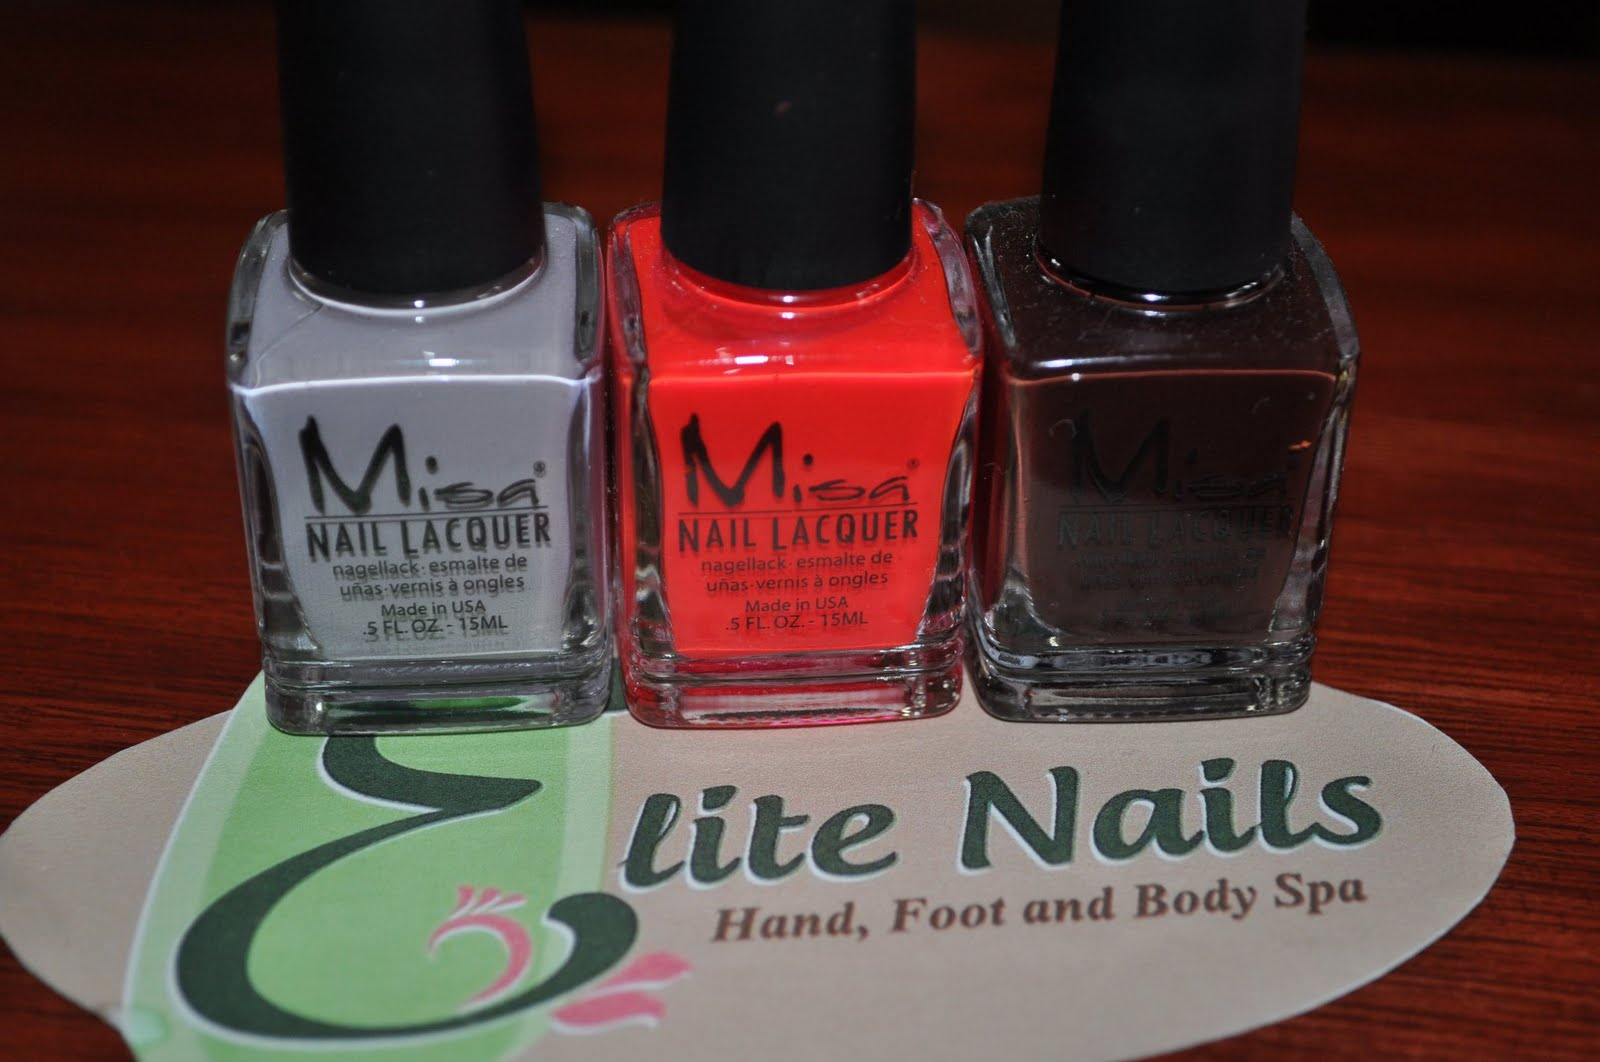 Elite Nails Hand, Foot and Body Spa: July 2011